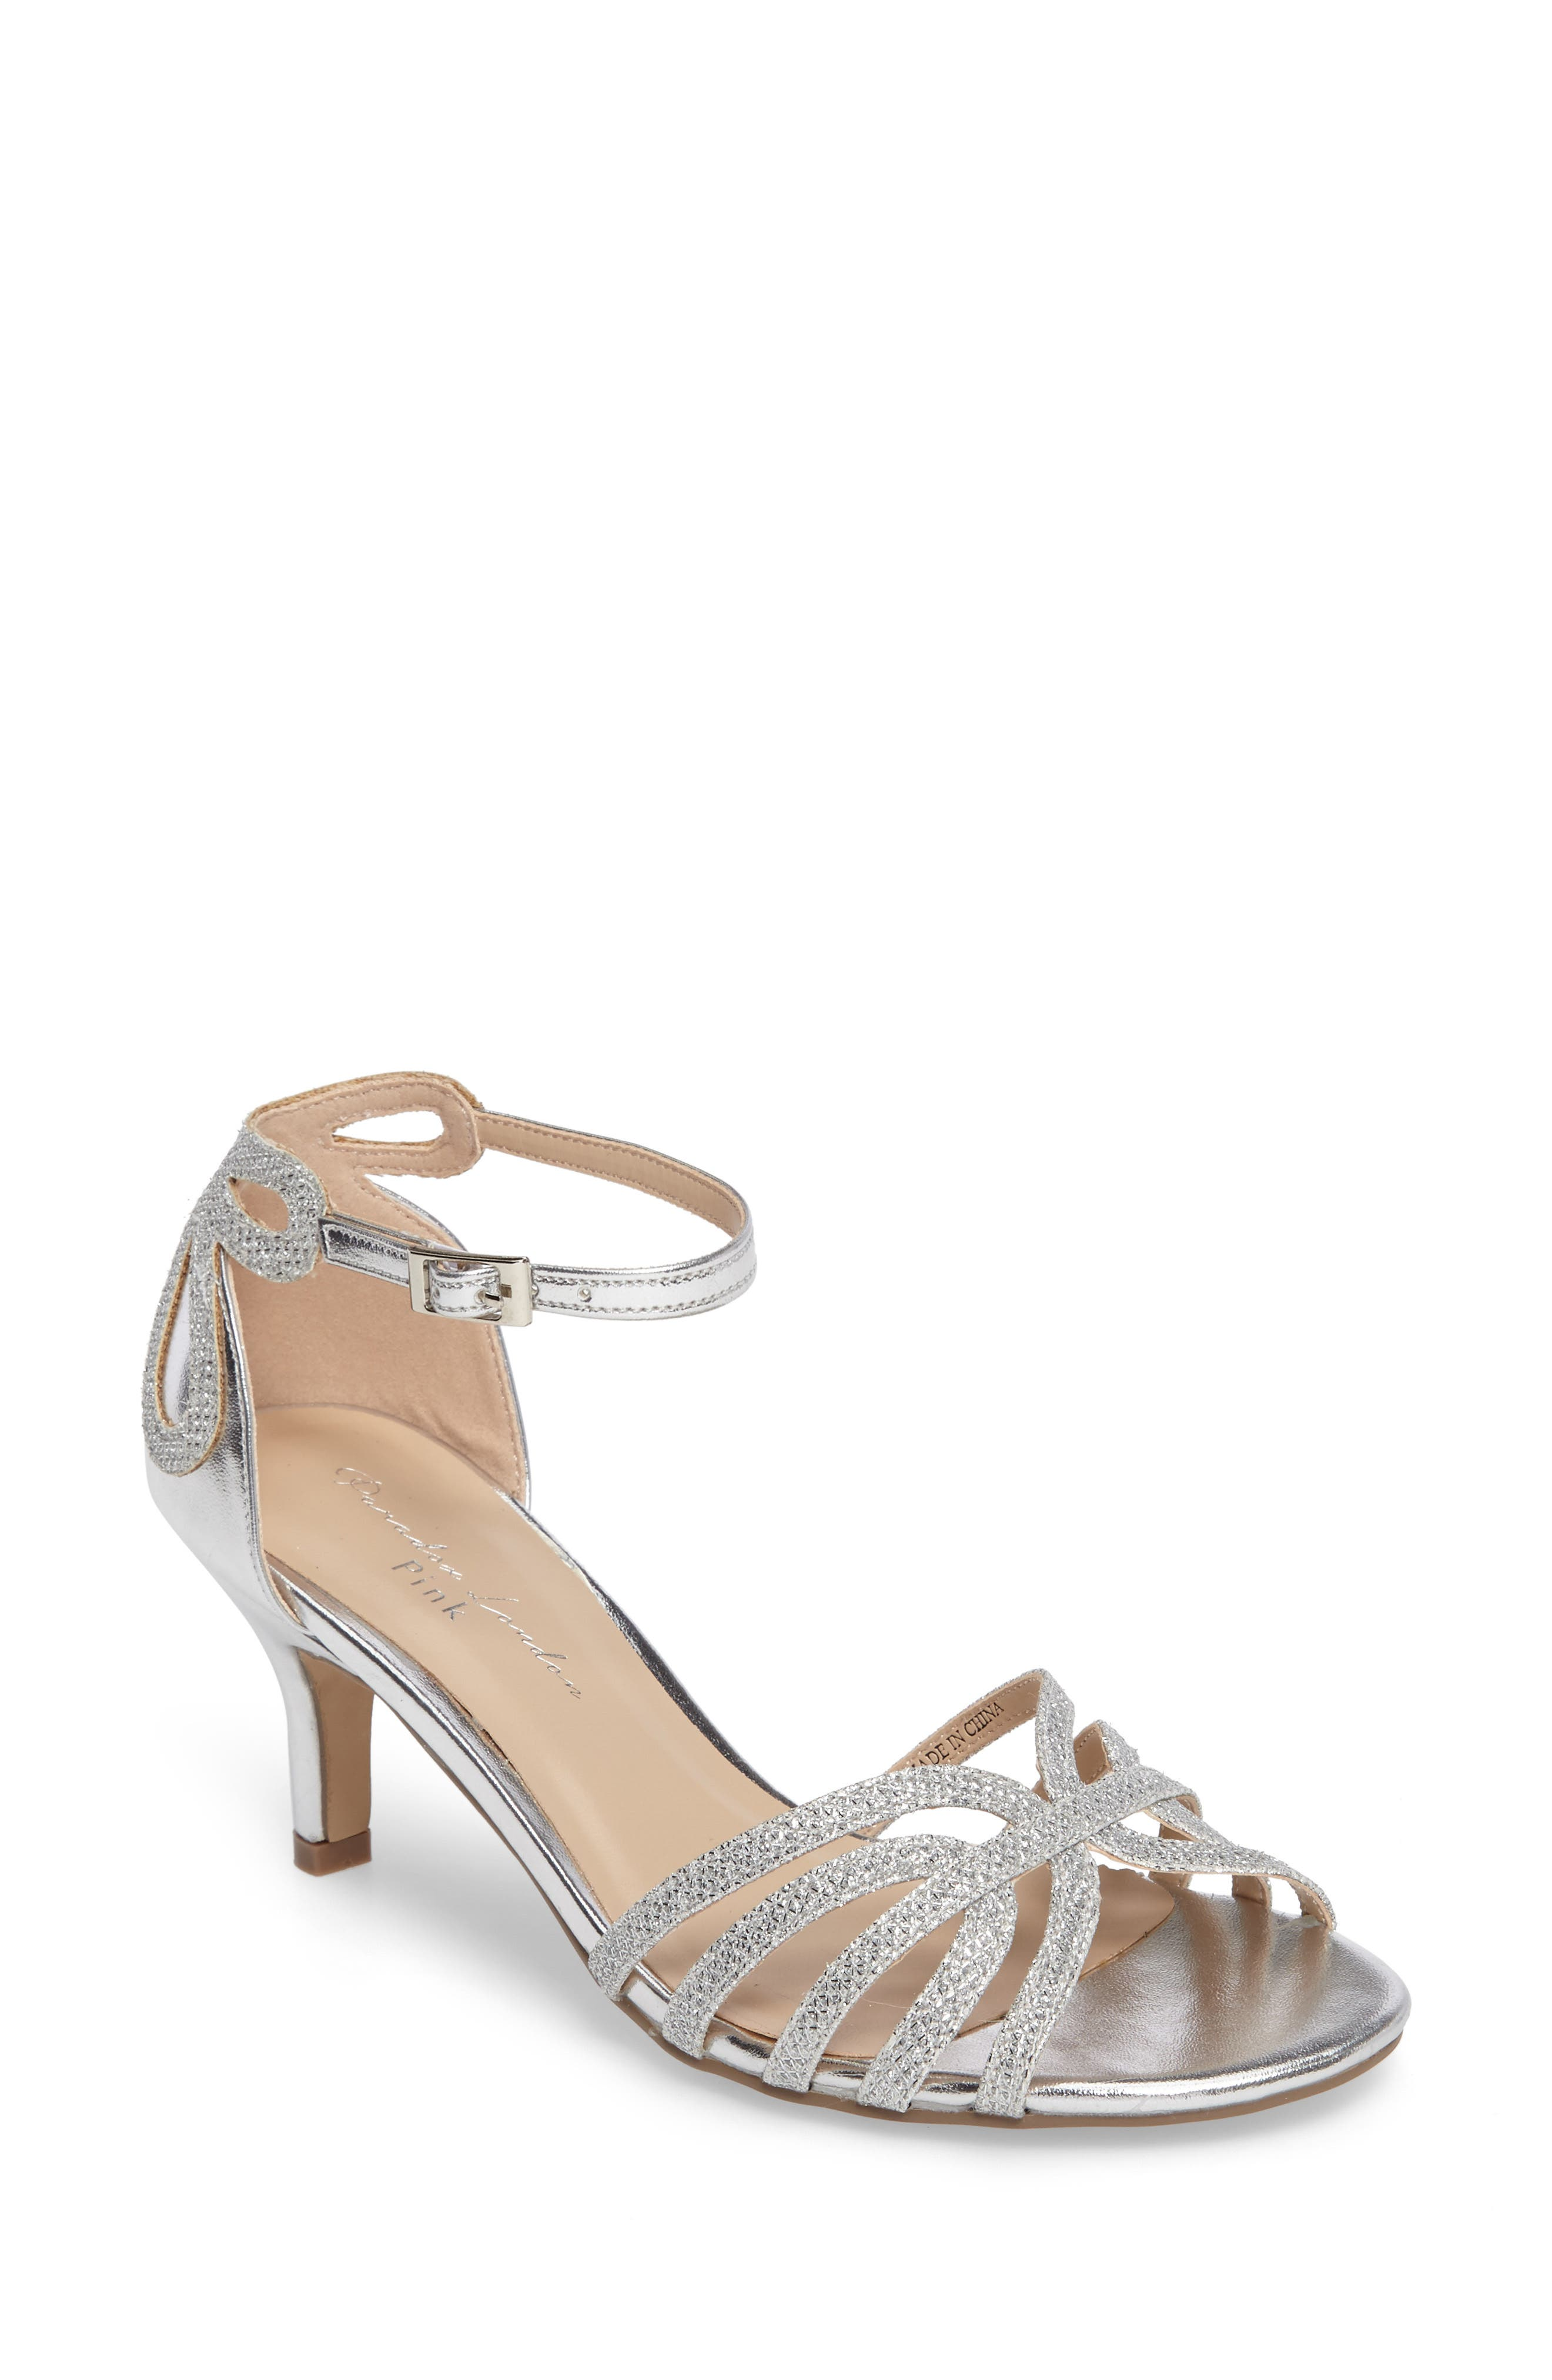 Melby Ankle Strap Sandal,                             Main thumbnail 1, color,                             SILVER